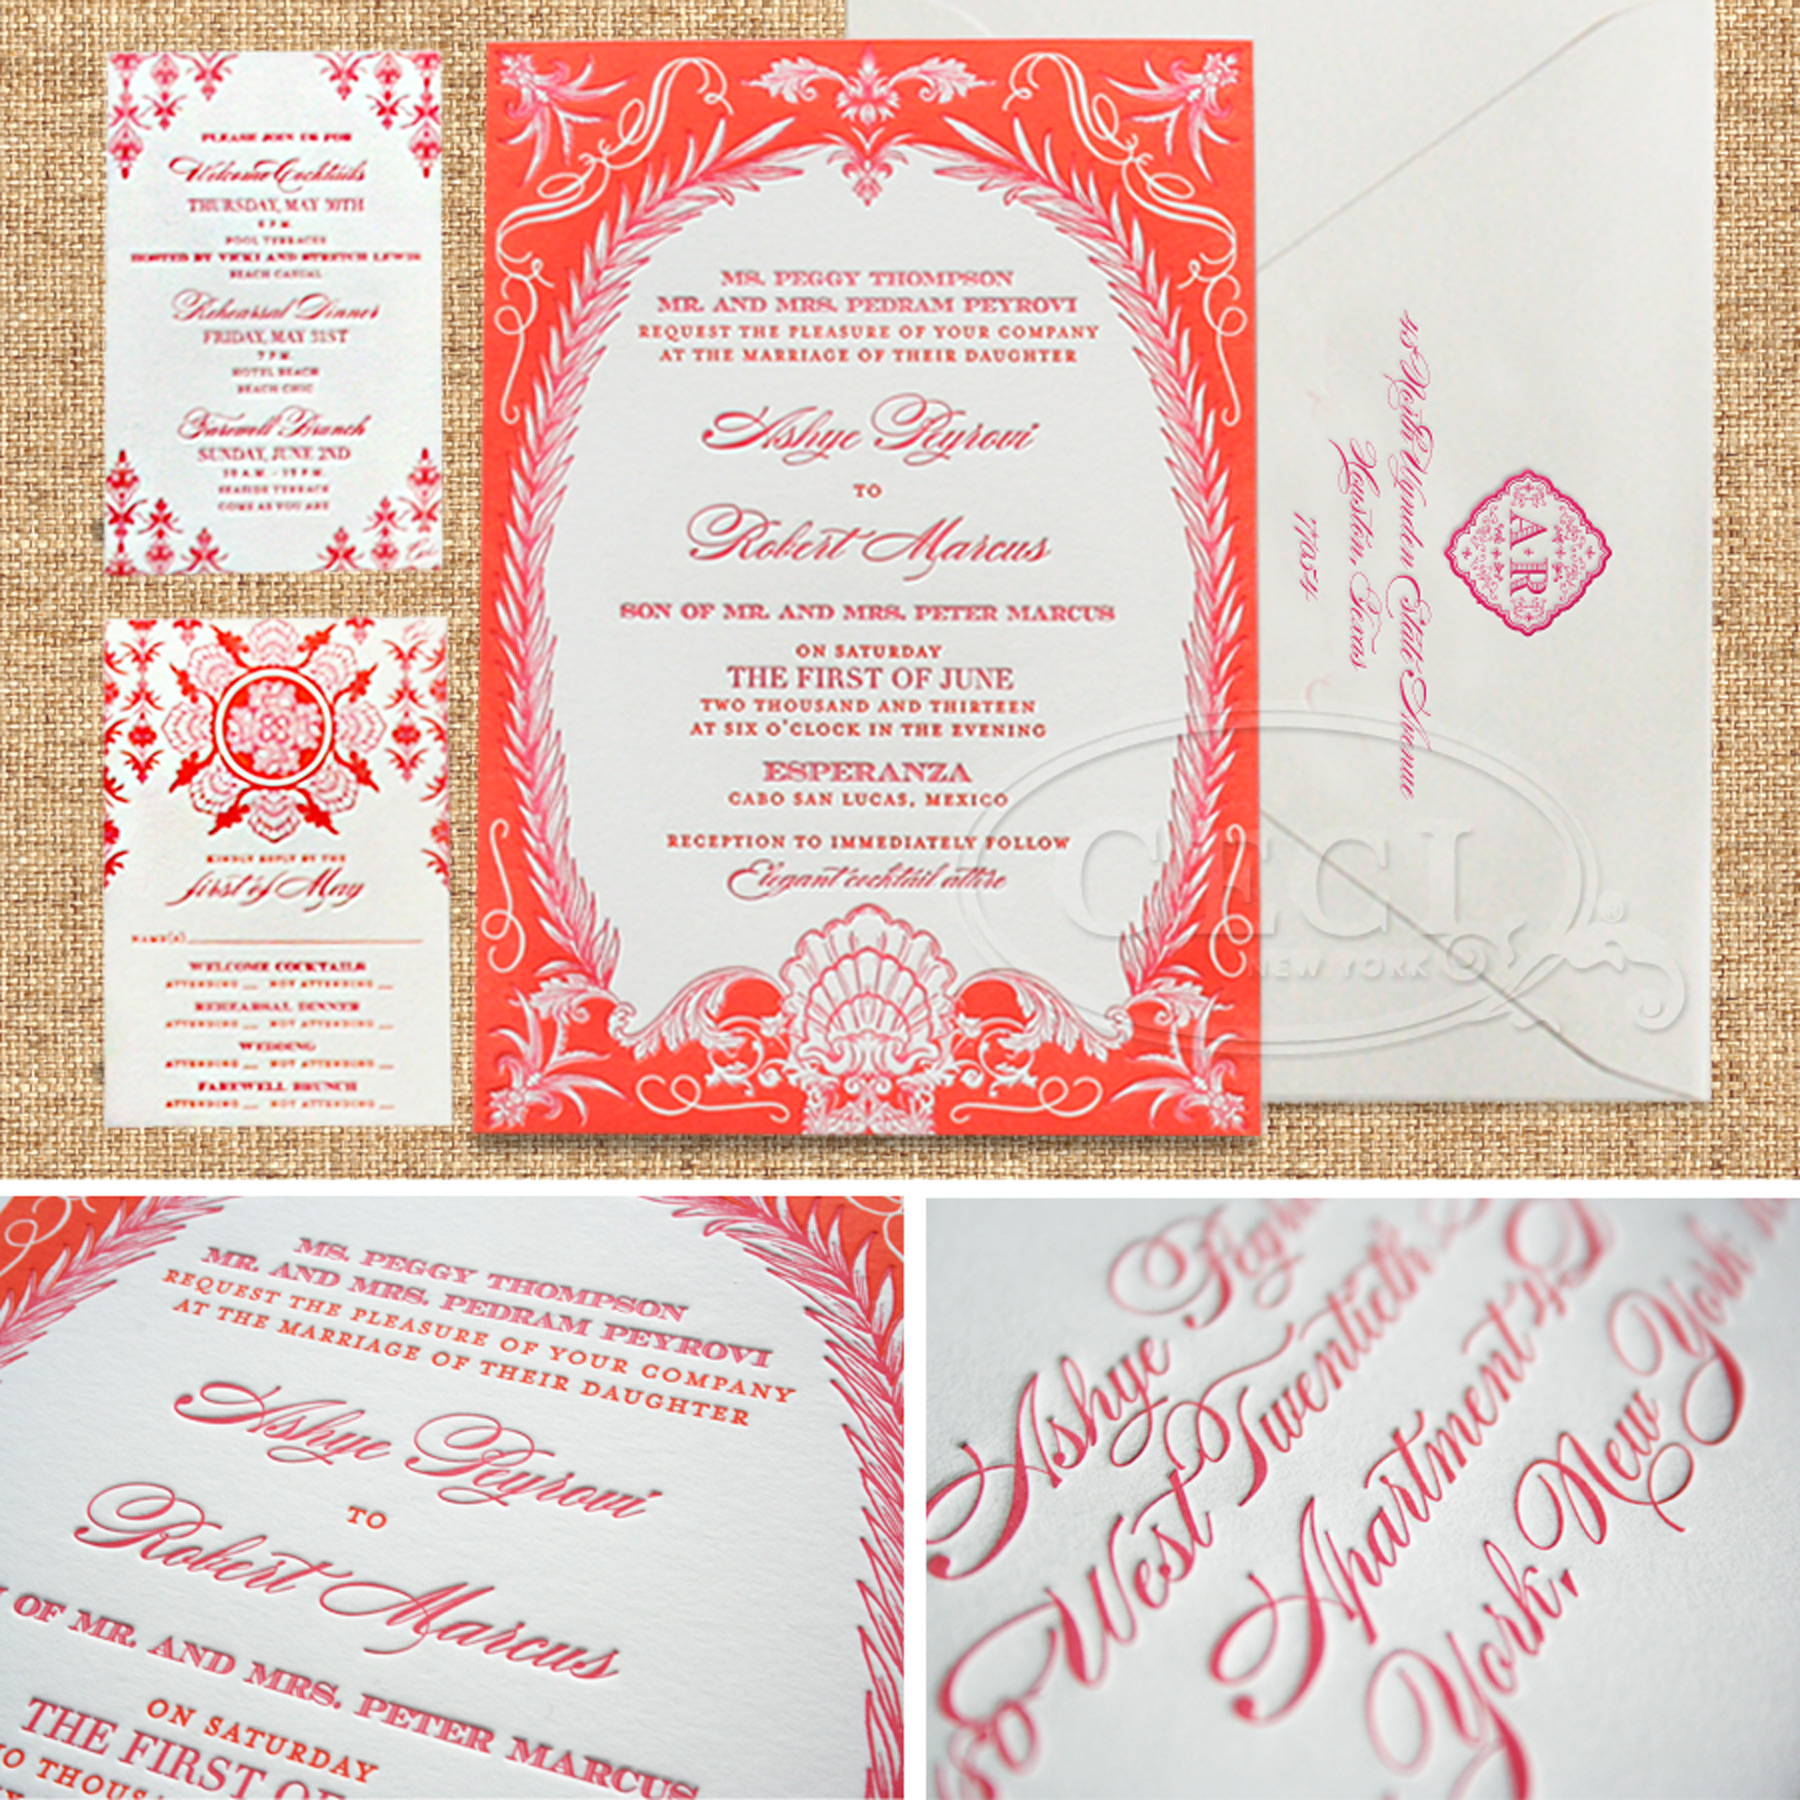 Luxury Wedding Invitations by Ceci New York - Our Muse - Stylish Destination Wedding - Be inspired by Ashye & Robert's chic destination wedding in Cabo San Lucas, Mexico - letterpress printing, invitation, ceci new york, tropical, destination, wedding, mexico, orange, hot pink